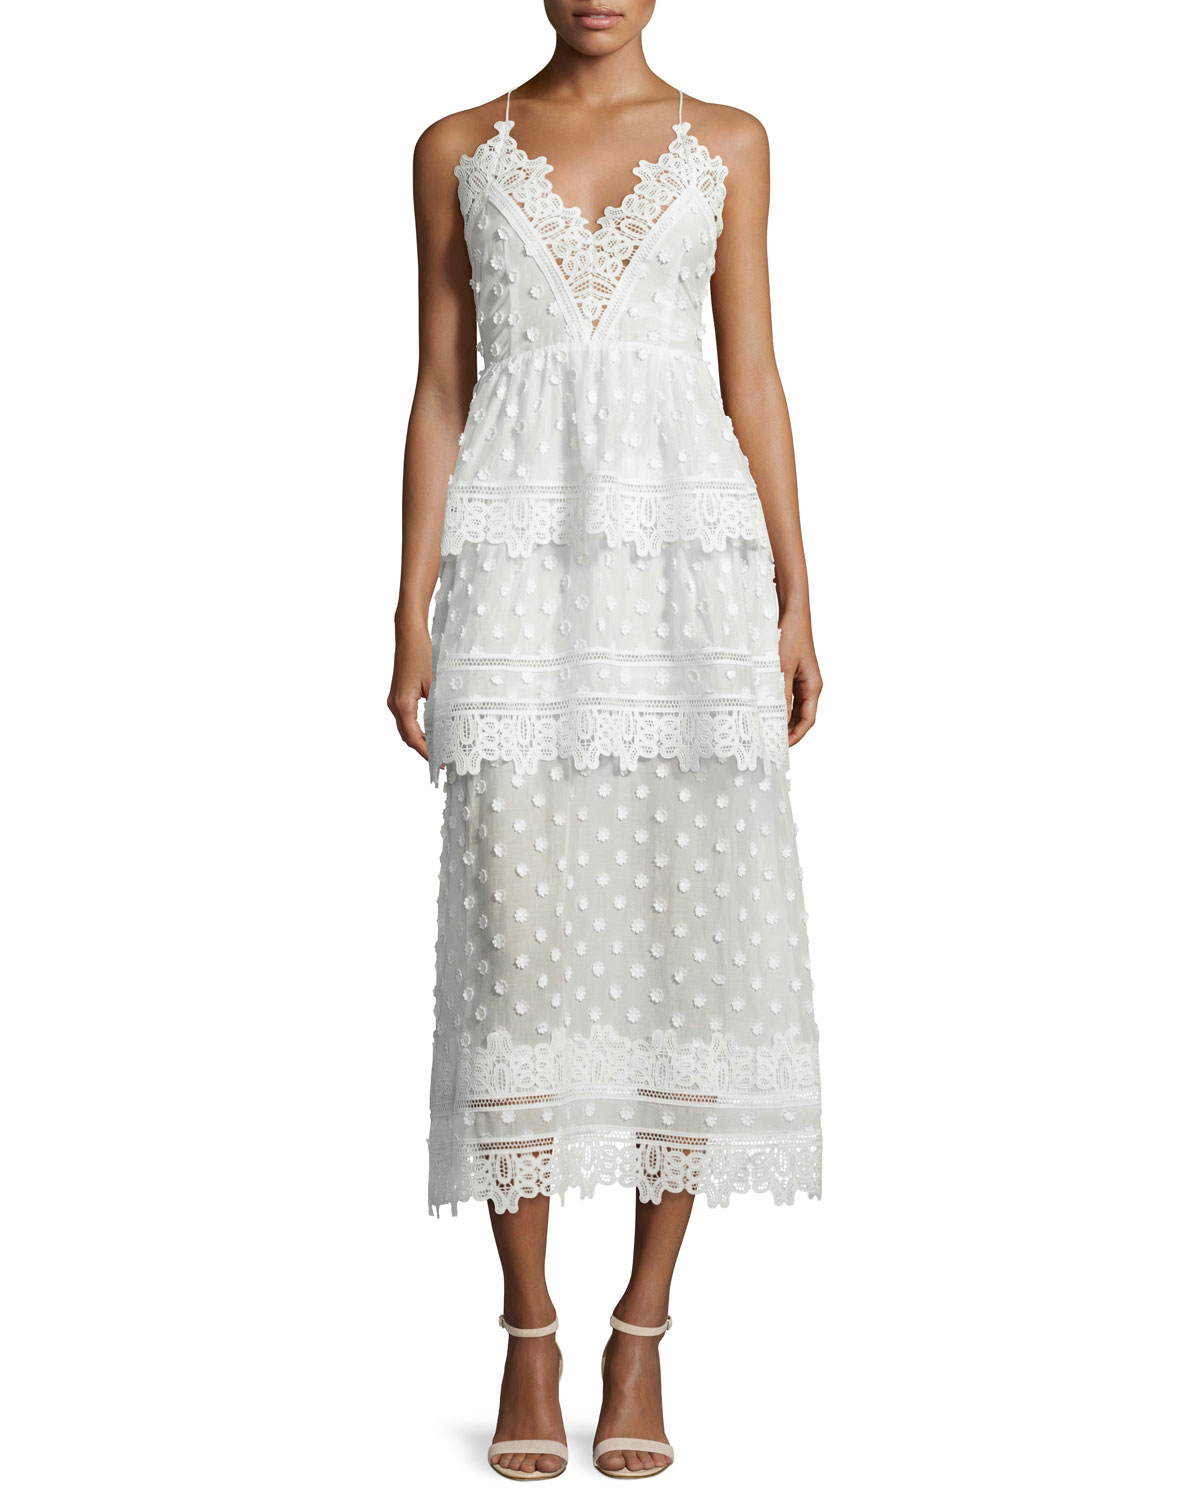 Tiered Pleated Swiss-dot Chiffon Midi Dress - White Self Portrait tcaqR